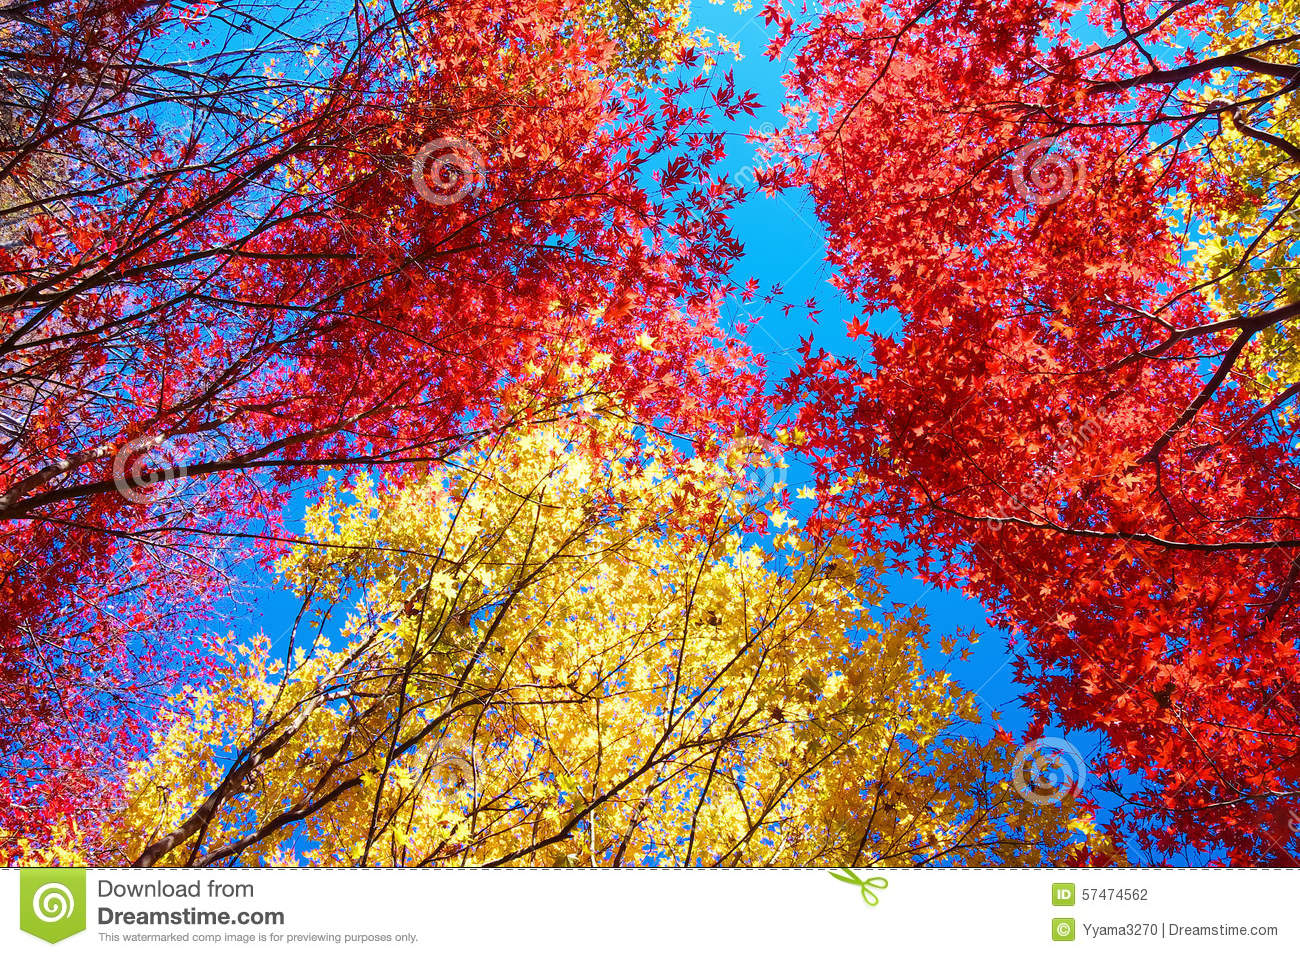 Red and yellow Japanese maple trees